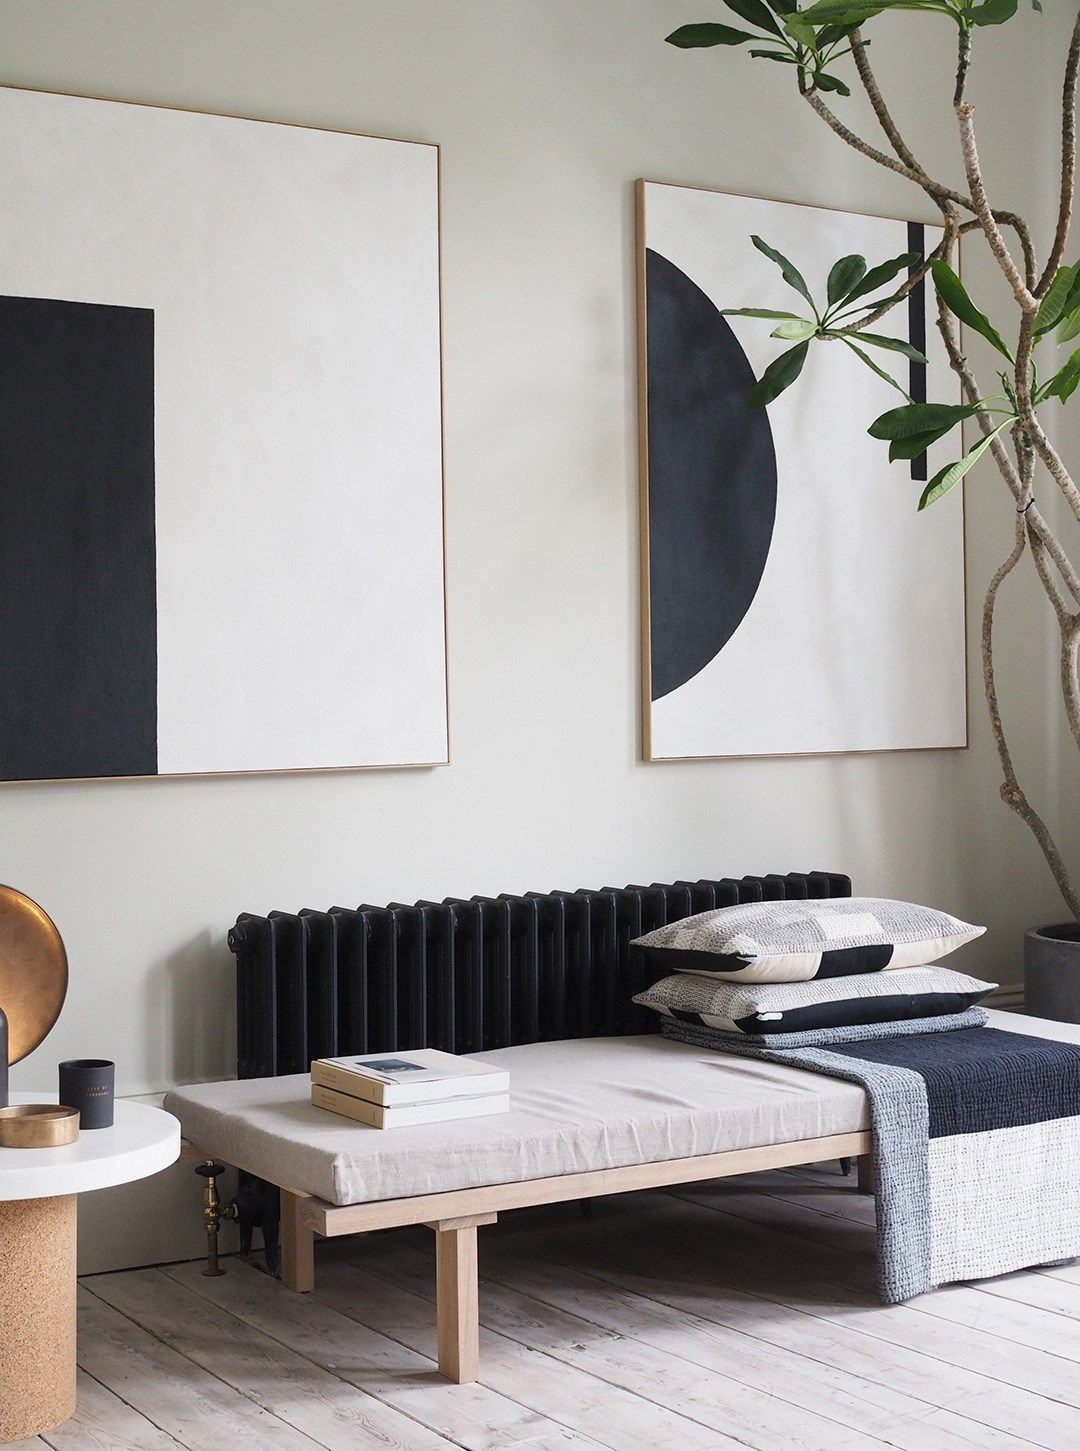 In the neighbourhood two elegant minimal london homes catesthill com